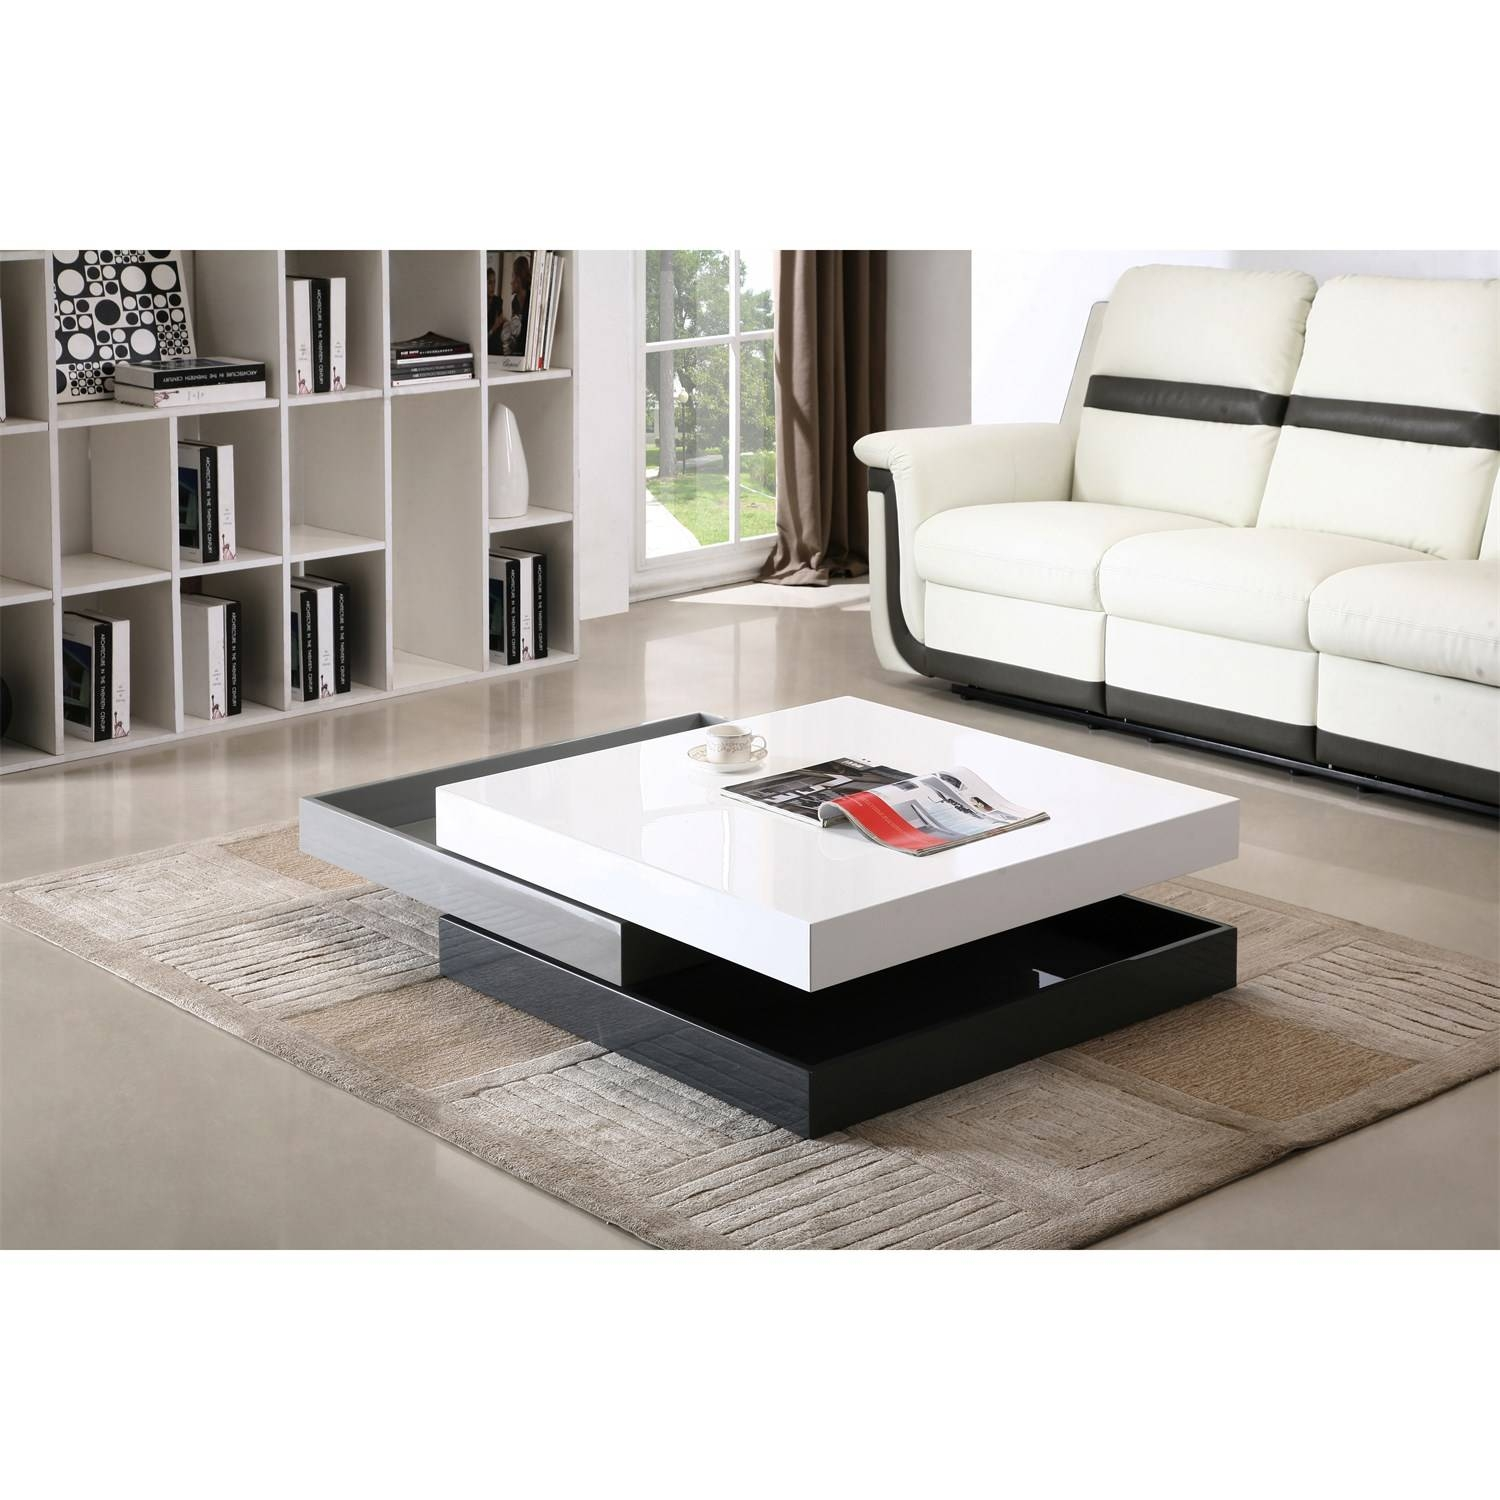 J&m Furniture Coffee Tables | Homeclick with Oval Gloss Coffee Tables (Image 20 of 30)